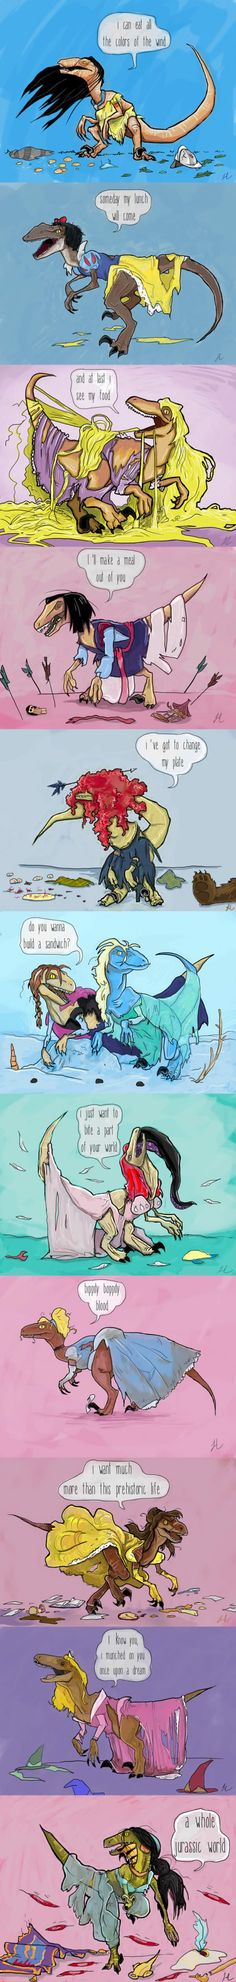 In honor of Jurassic Park, Artist Laura Cooper created velociraptors. as Disney princesses. In honor of Jurassic Park, Artist Laura Cooper created velociraptors. as Disney princesses. Disney Love, Disney Magic, Disney Art, Disney And Dreamworks, Disney Pixar, Princesas Disney Zombie, Jurassic Park World, Jurassic Park Funny, Disney Memes